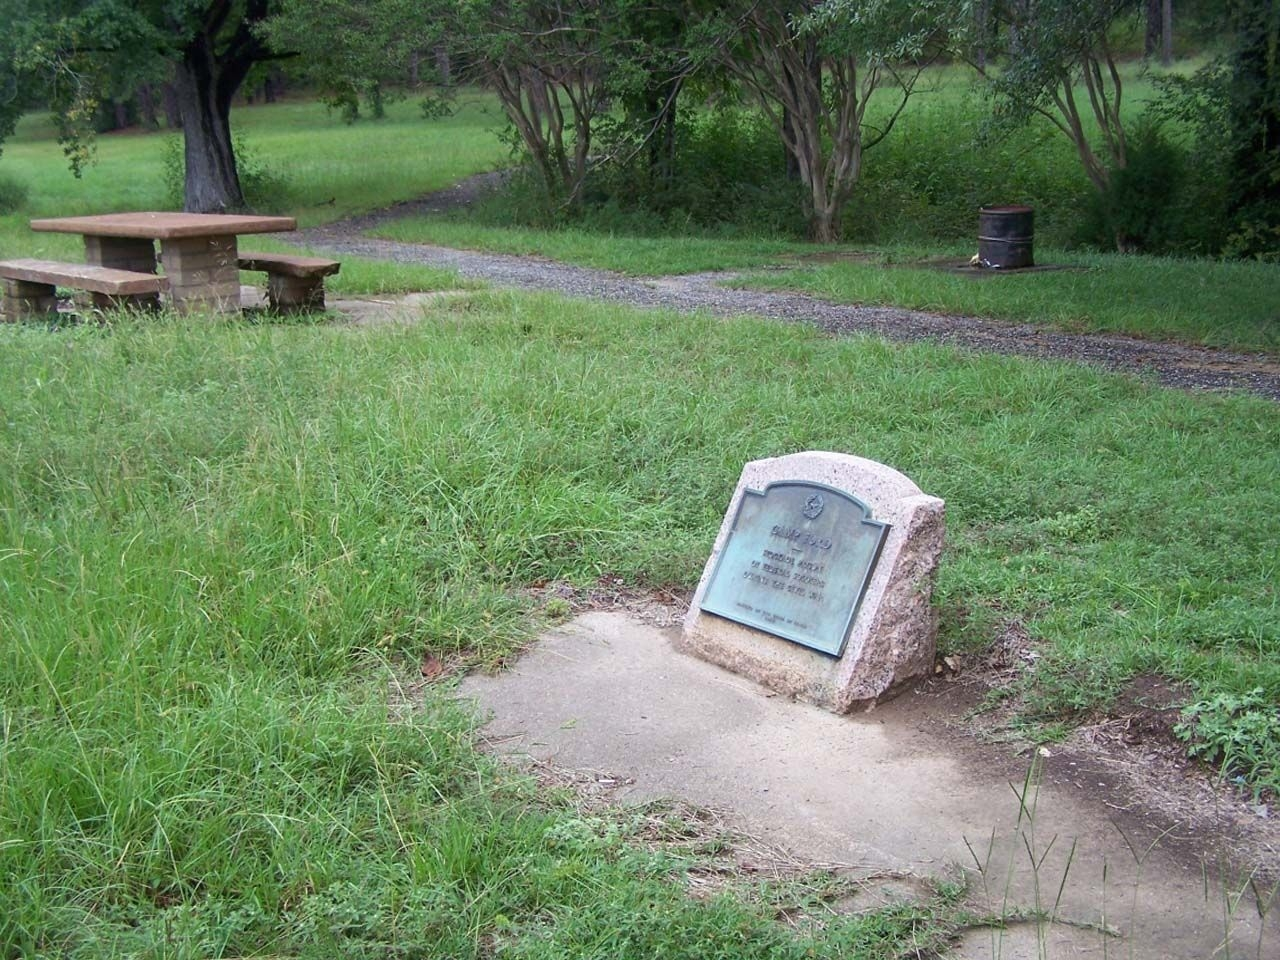 1936 State of Texas marker: Camp Ford stockade prison of Federal soldiers during the Civil War